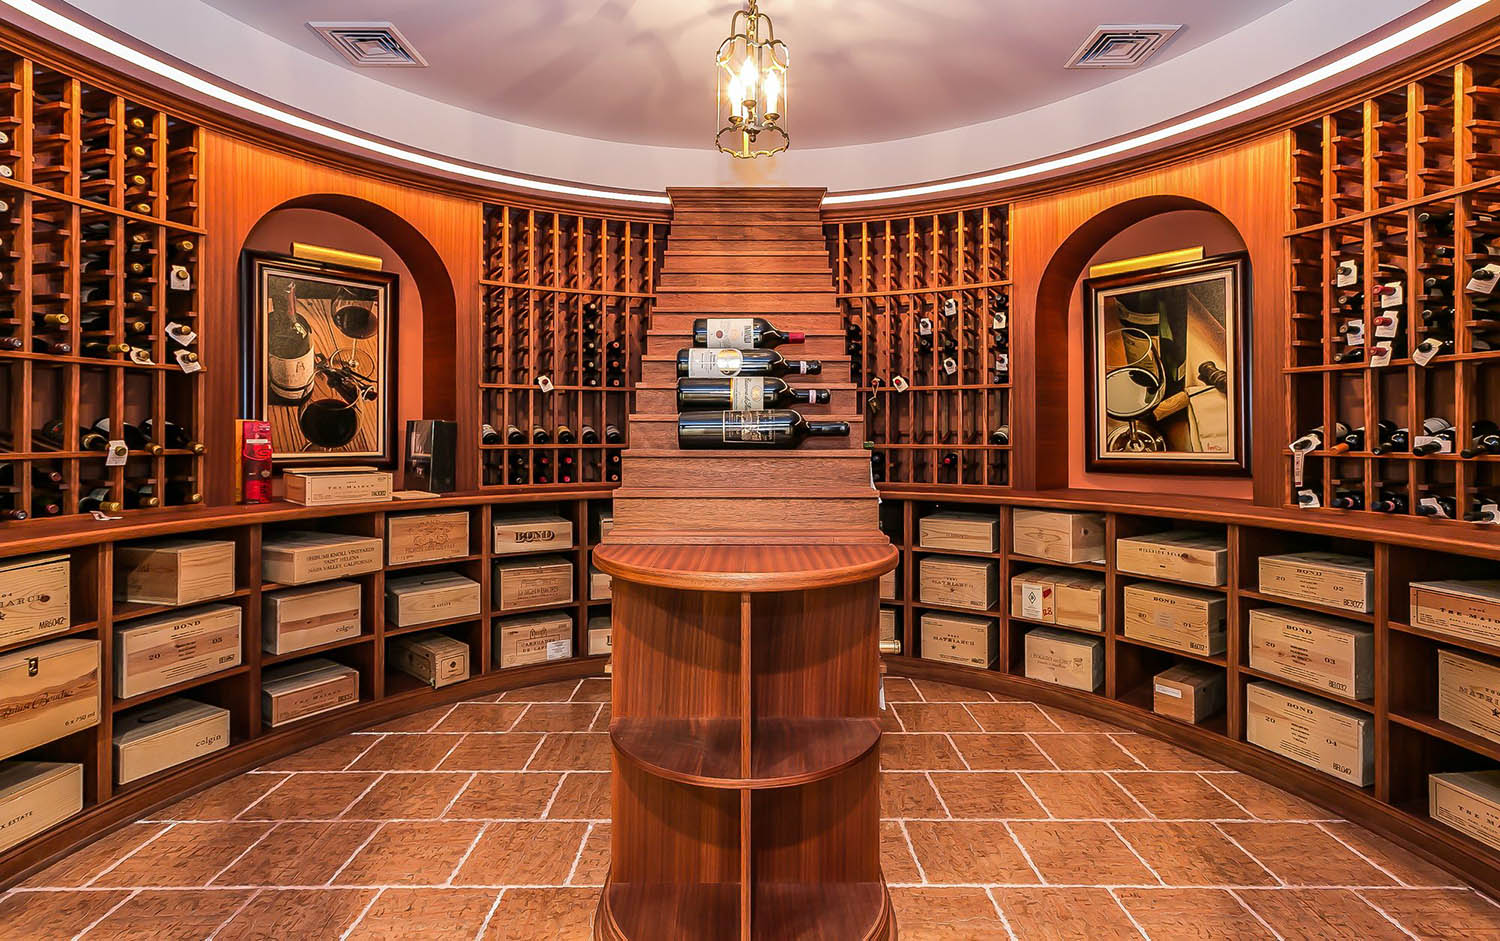 Rustic wine cellar with stone walls and wood ceiling. Custom built wood wine racks with a wood center tasting table. Glass doors.